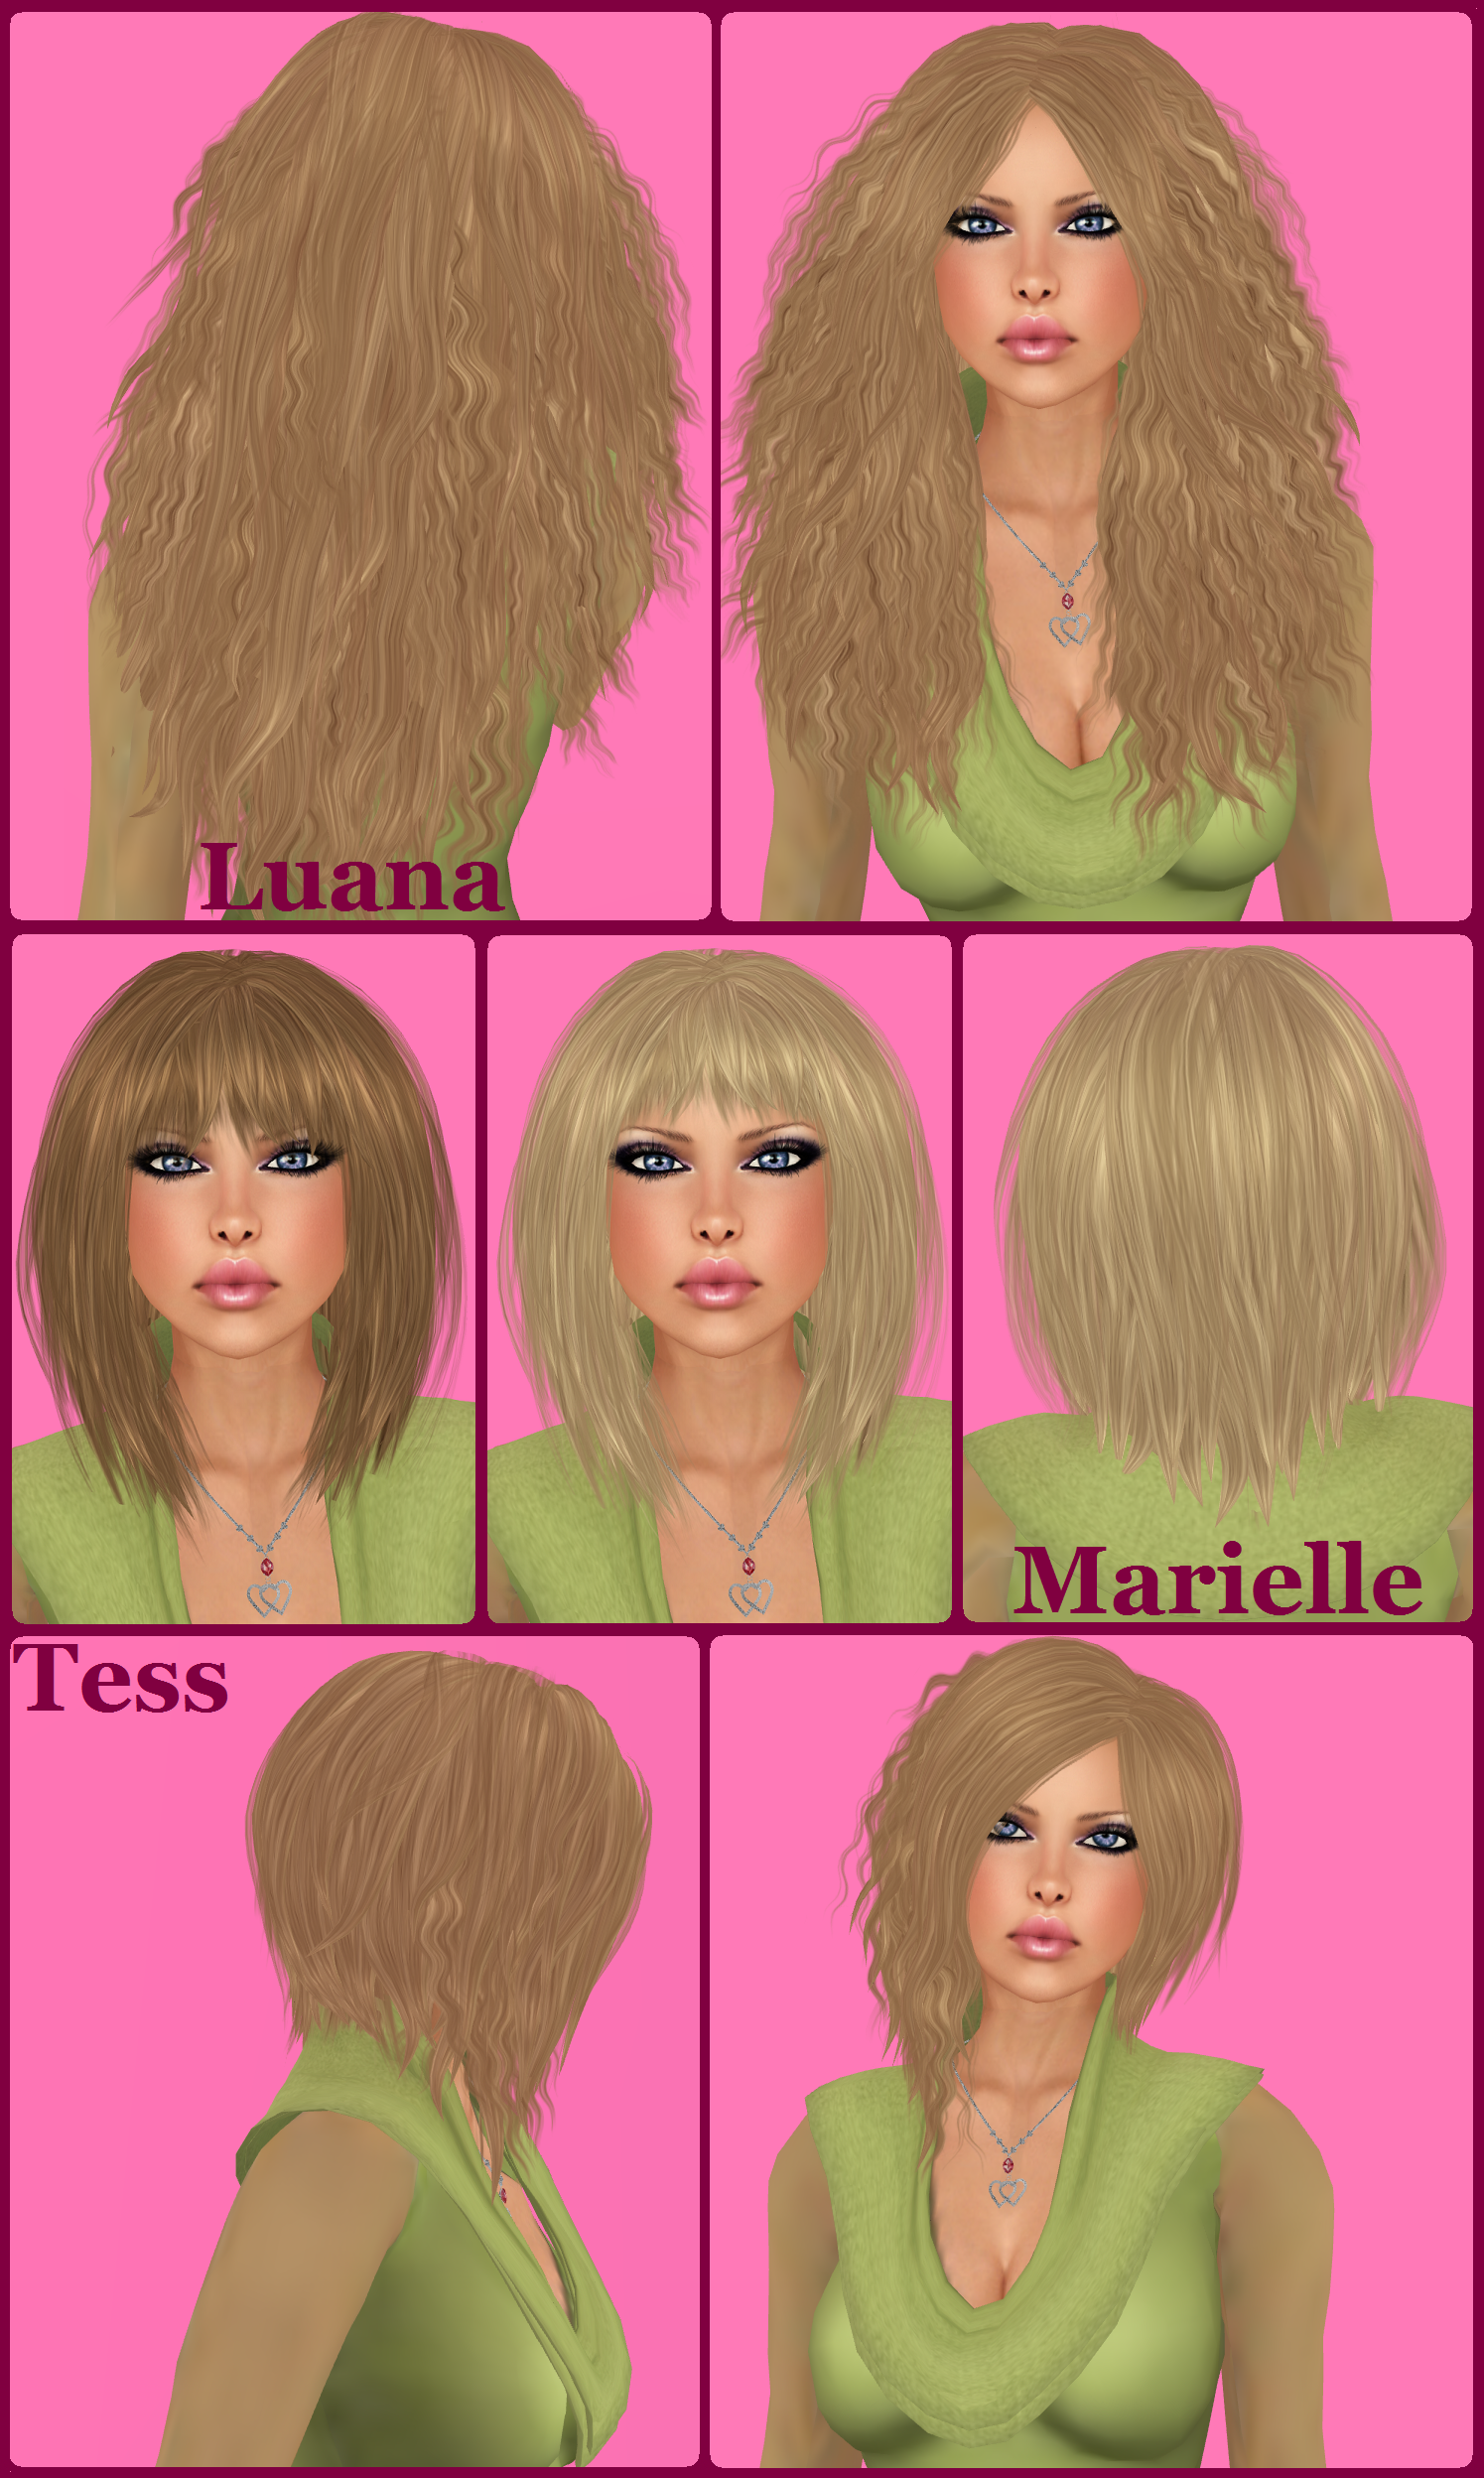 Tess Deb S Science: My Style In Second Life